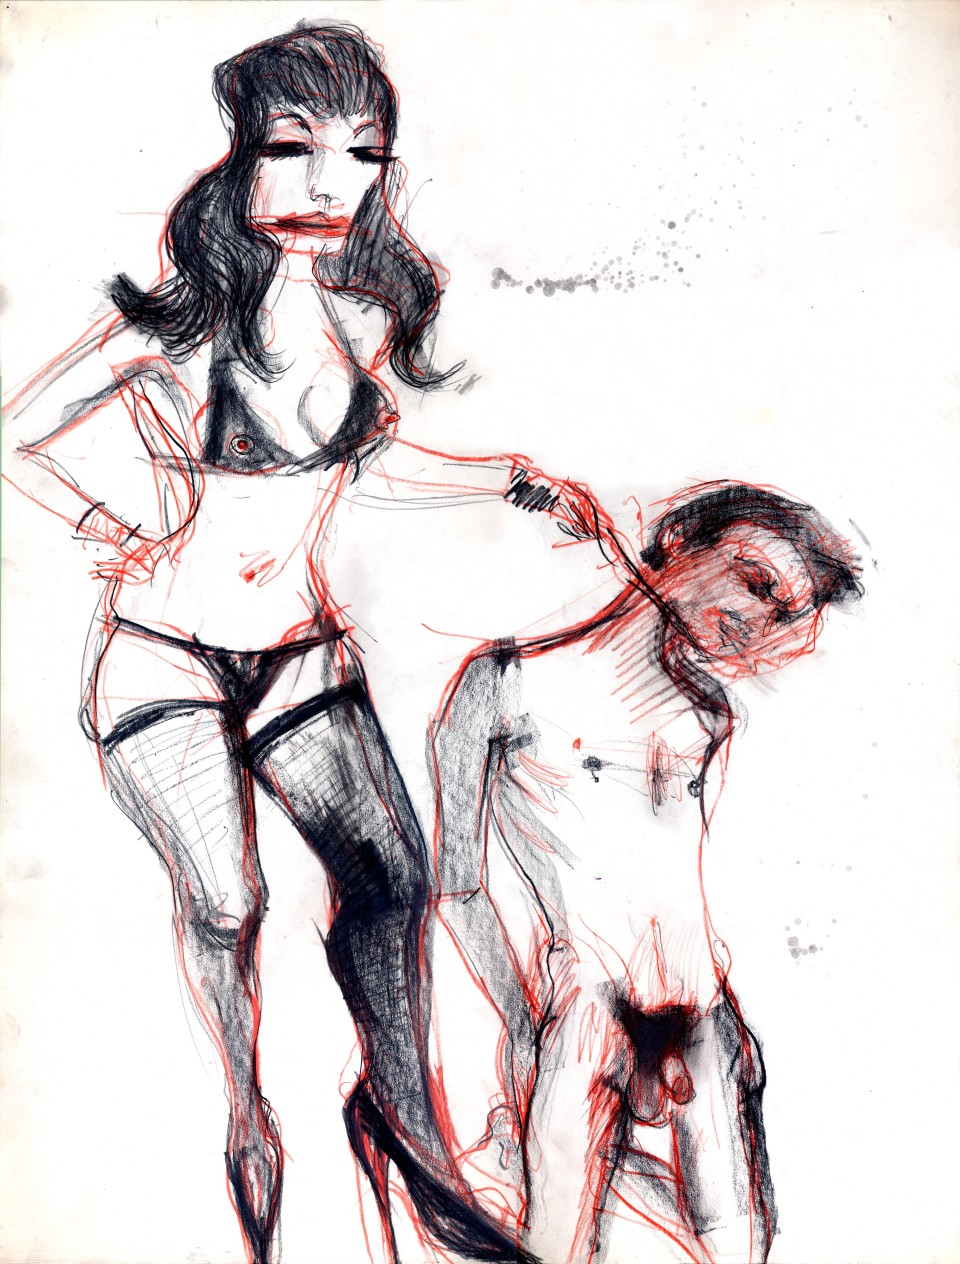 Image: Jimmy Wright  Rock Bondage: The Chelsea #1, 1976  graphite and color pencil on paper  29 x 23 inches (73.7 x 58.4 cm)